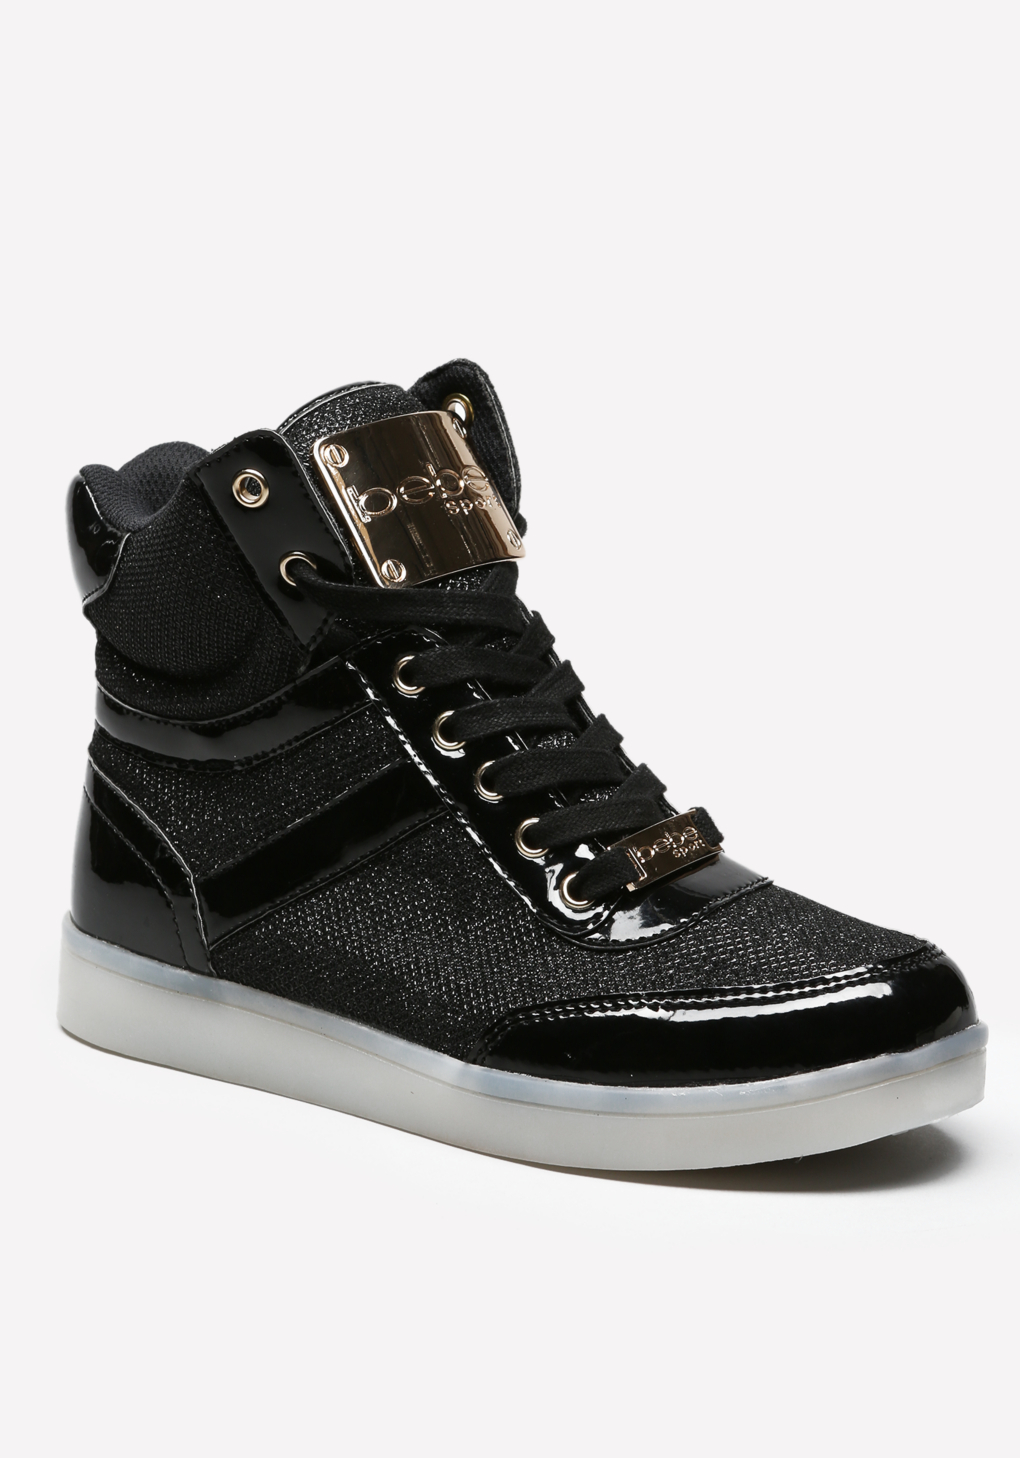 Bebe Krysten High Top Sneakers In Black